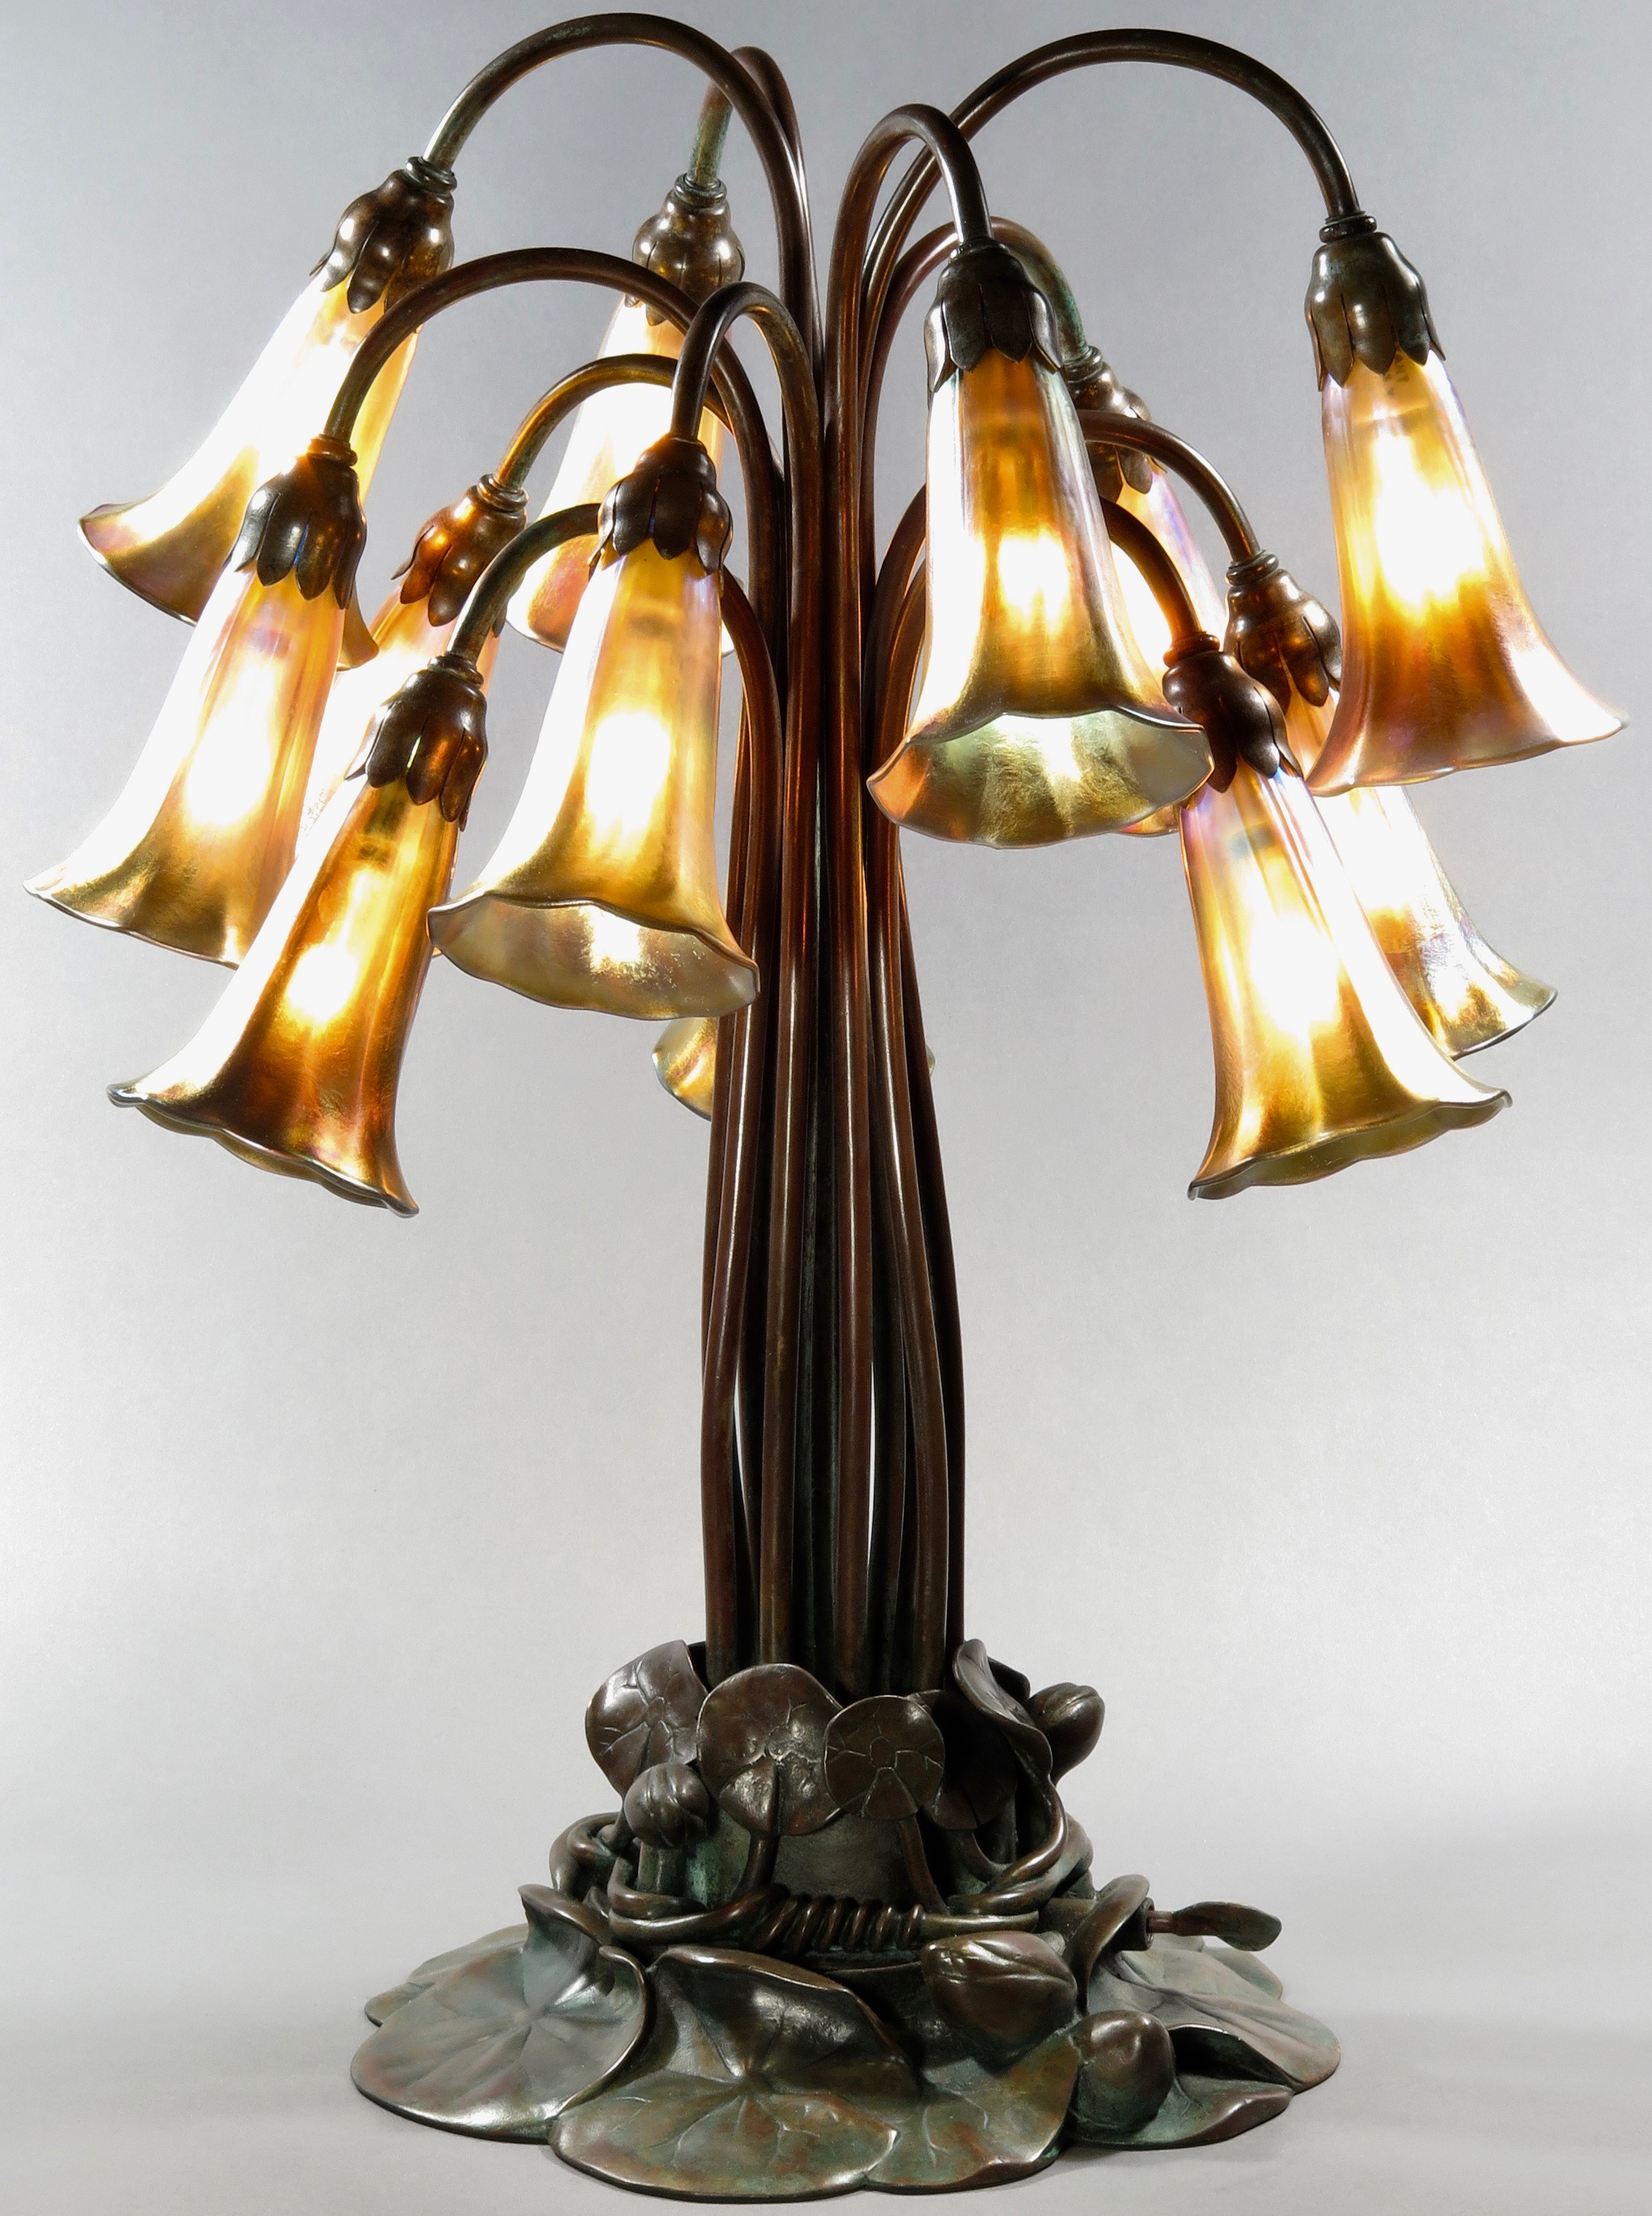 Tiffany Studios Patinated 12 Light Lily Table Lamp